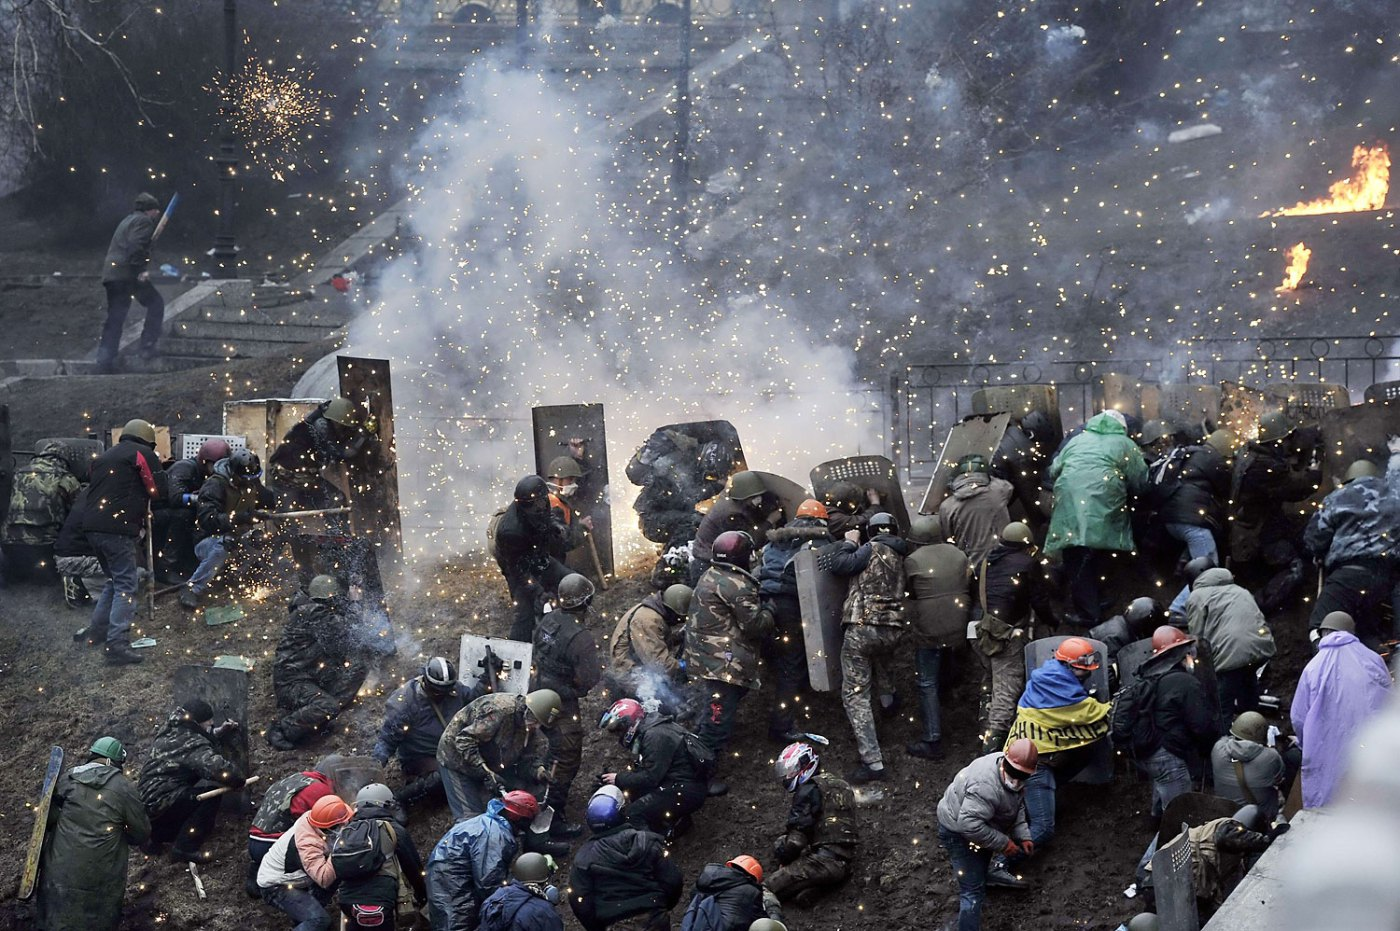 Protesters clash with police after gaining new positions near the Independence square in Kiev, Ukraine on February 20, 2014.